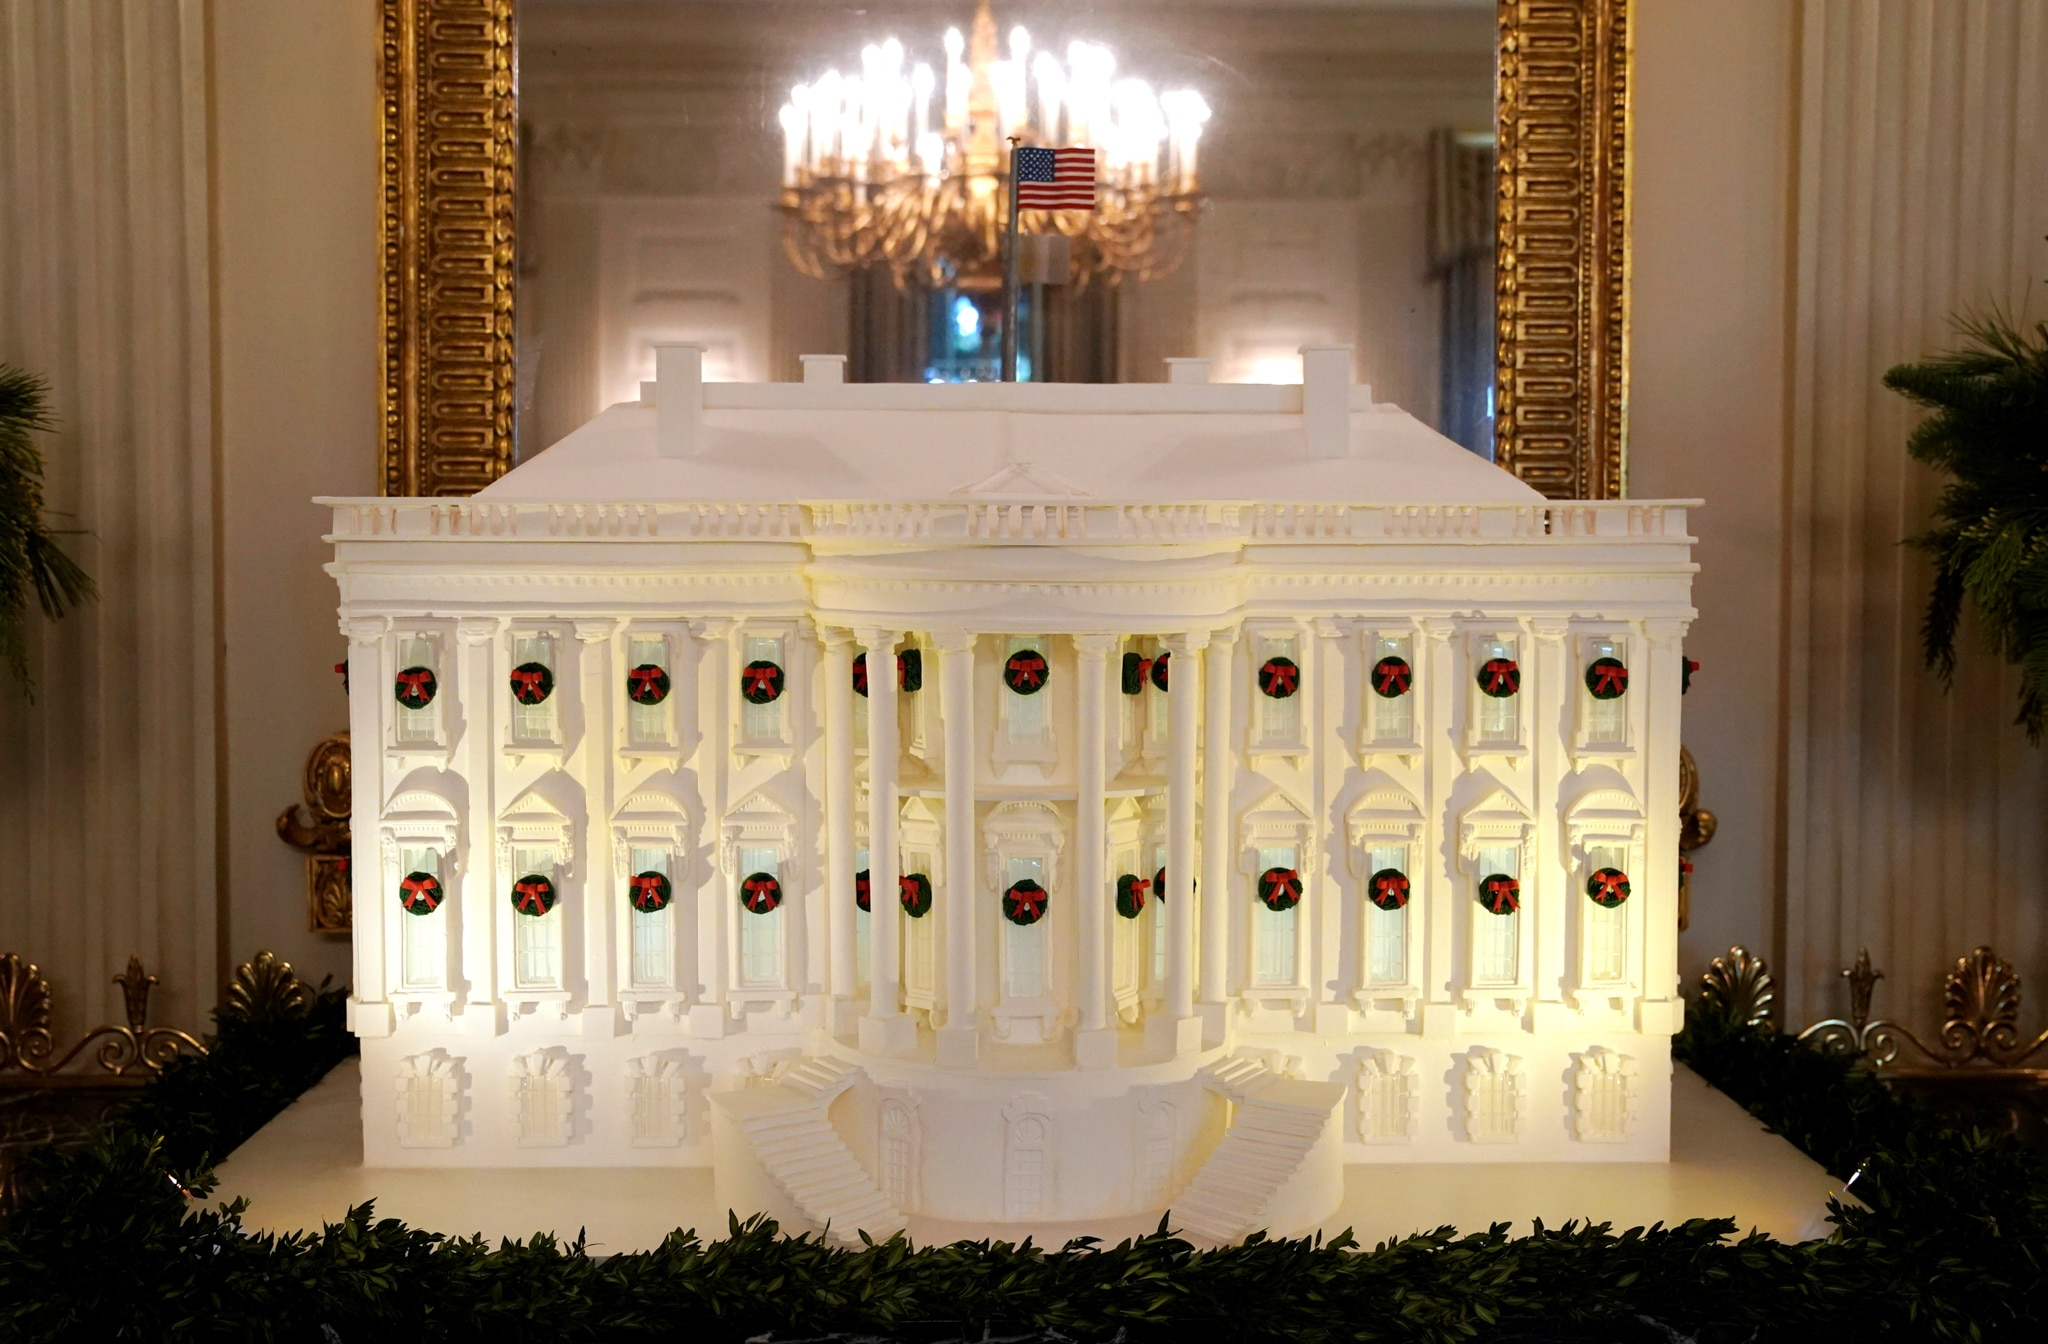 Miniature White House, lit up and sitting in front of mirror (© Kevin Lamarque/Reuters)